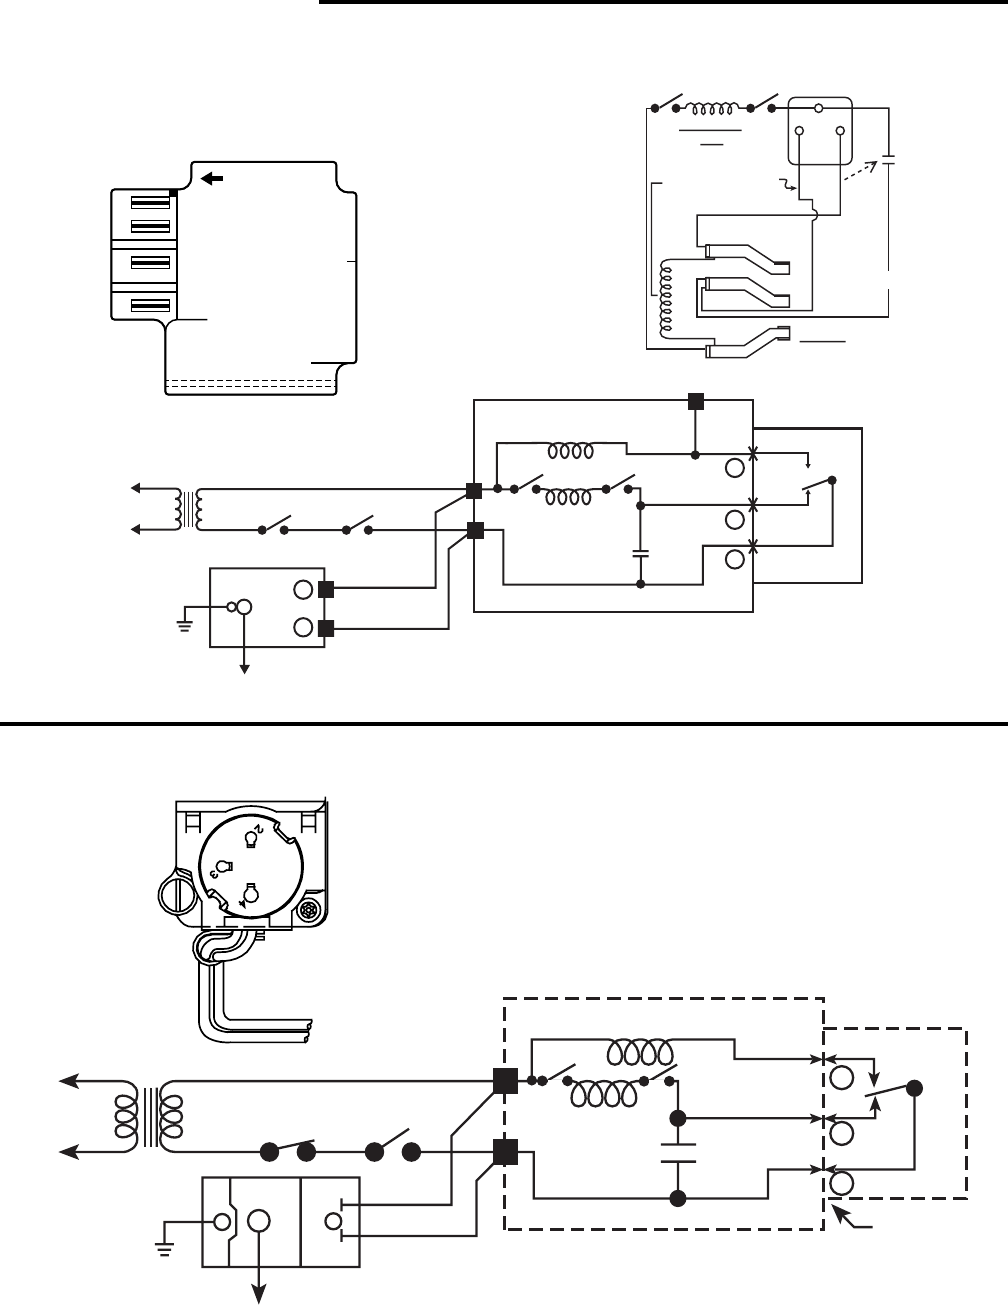 36H64 463   White Rodgers 36H64 463   3 4  36H Two Stage Gas Valve additionally White Knight Tumble Dryer Wiring Diagram  White  Free For Hotpoint additionally White Rodgers Gas Valve Wiring Diagram   gooddy org furthermore White Rodgers Gas Valve Wiring Diagram For   gooddy org besides Emerson 36J User Manual Pdf Download additionally Education You Can Build On White Rodgers Gas Furnace Valves    ppt in addition Gas Valve  Gas Valve Model 36c68 moreover Gas Valves With White Rodgers Valve Wiring Diagram   gooddy org together with White Rodgers Gas Valves   White Rodgers Valves   White Gas Valves besides Education You Can Build On White Rodgers Gas Furnace Valves    ppt besides Heatilator White Rodgers Gas Valve   NG   LP   71511. on white rodgers 36h wiring